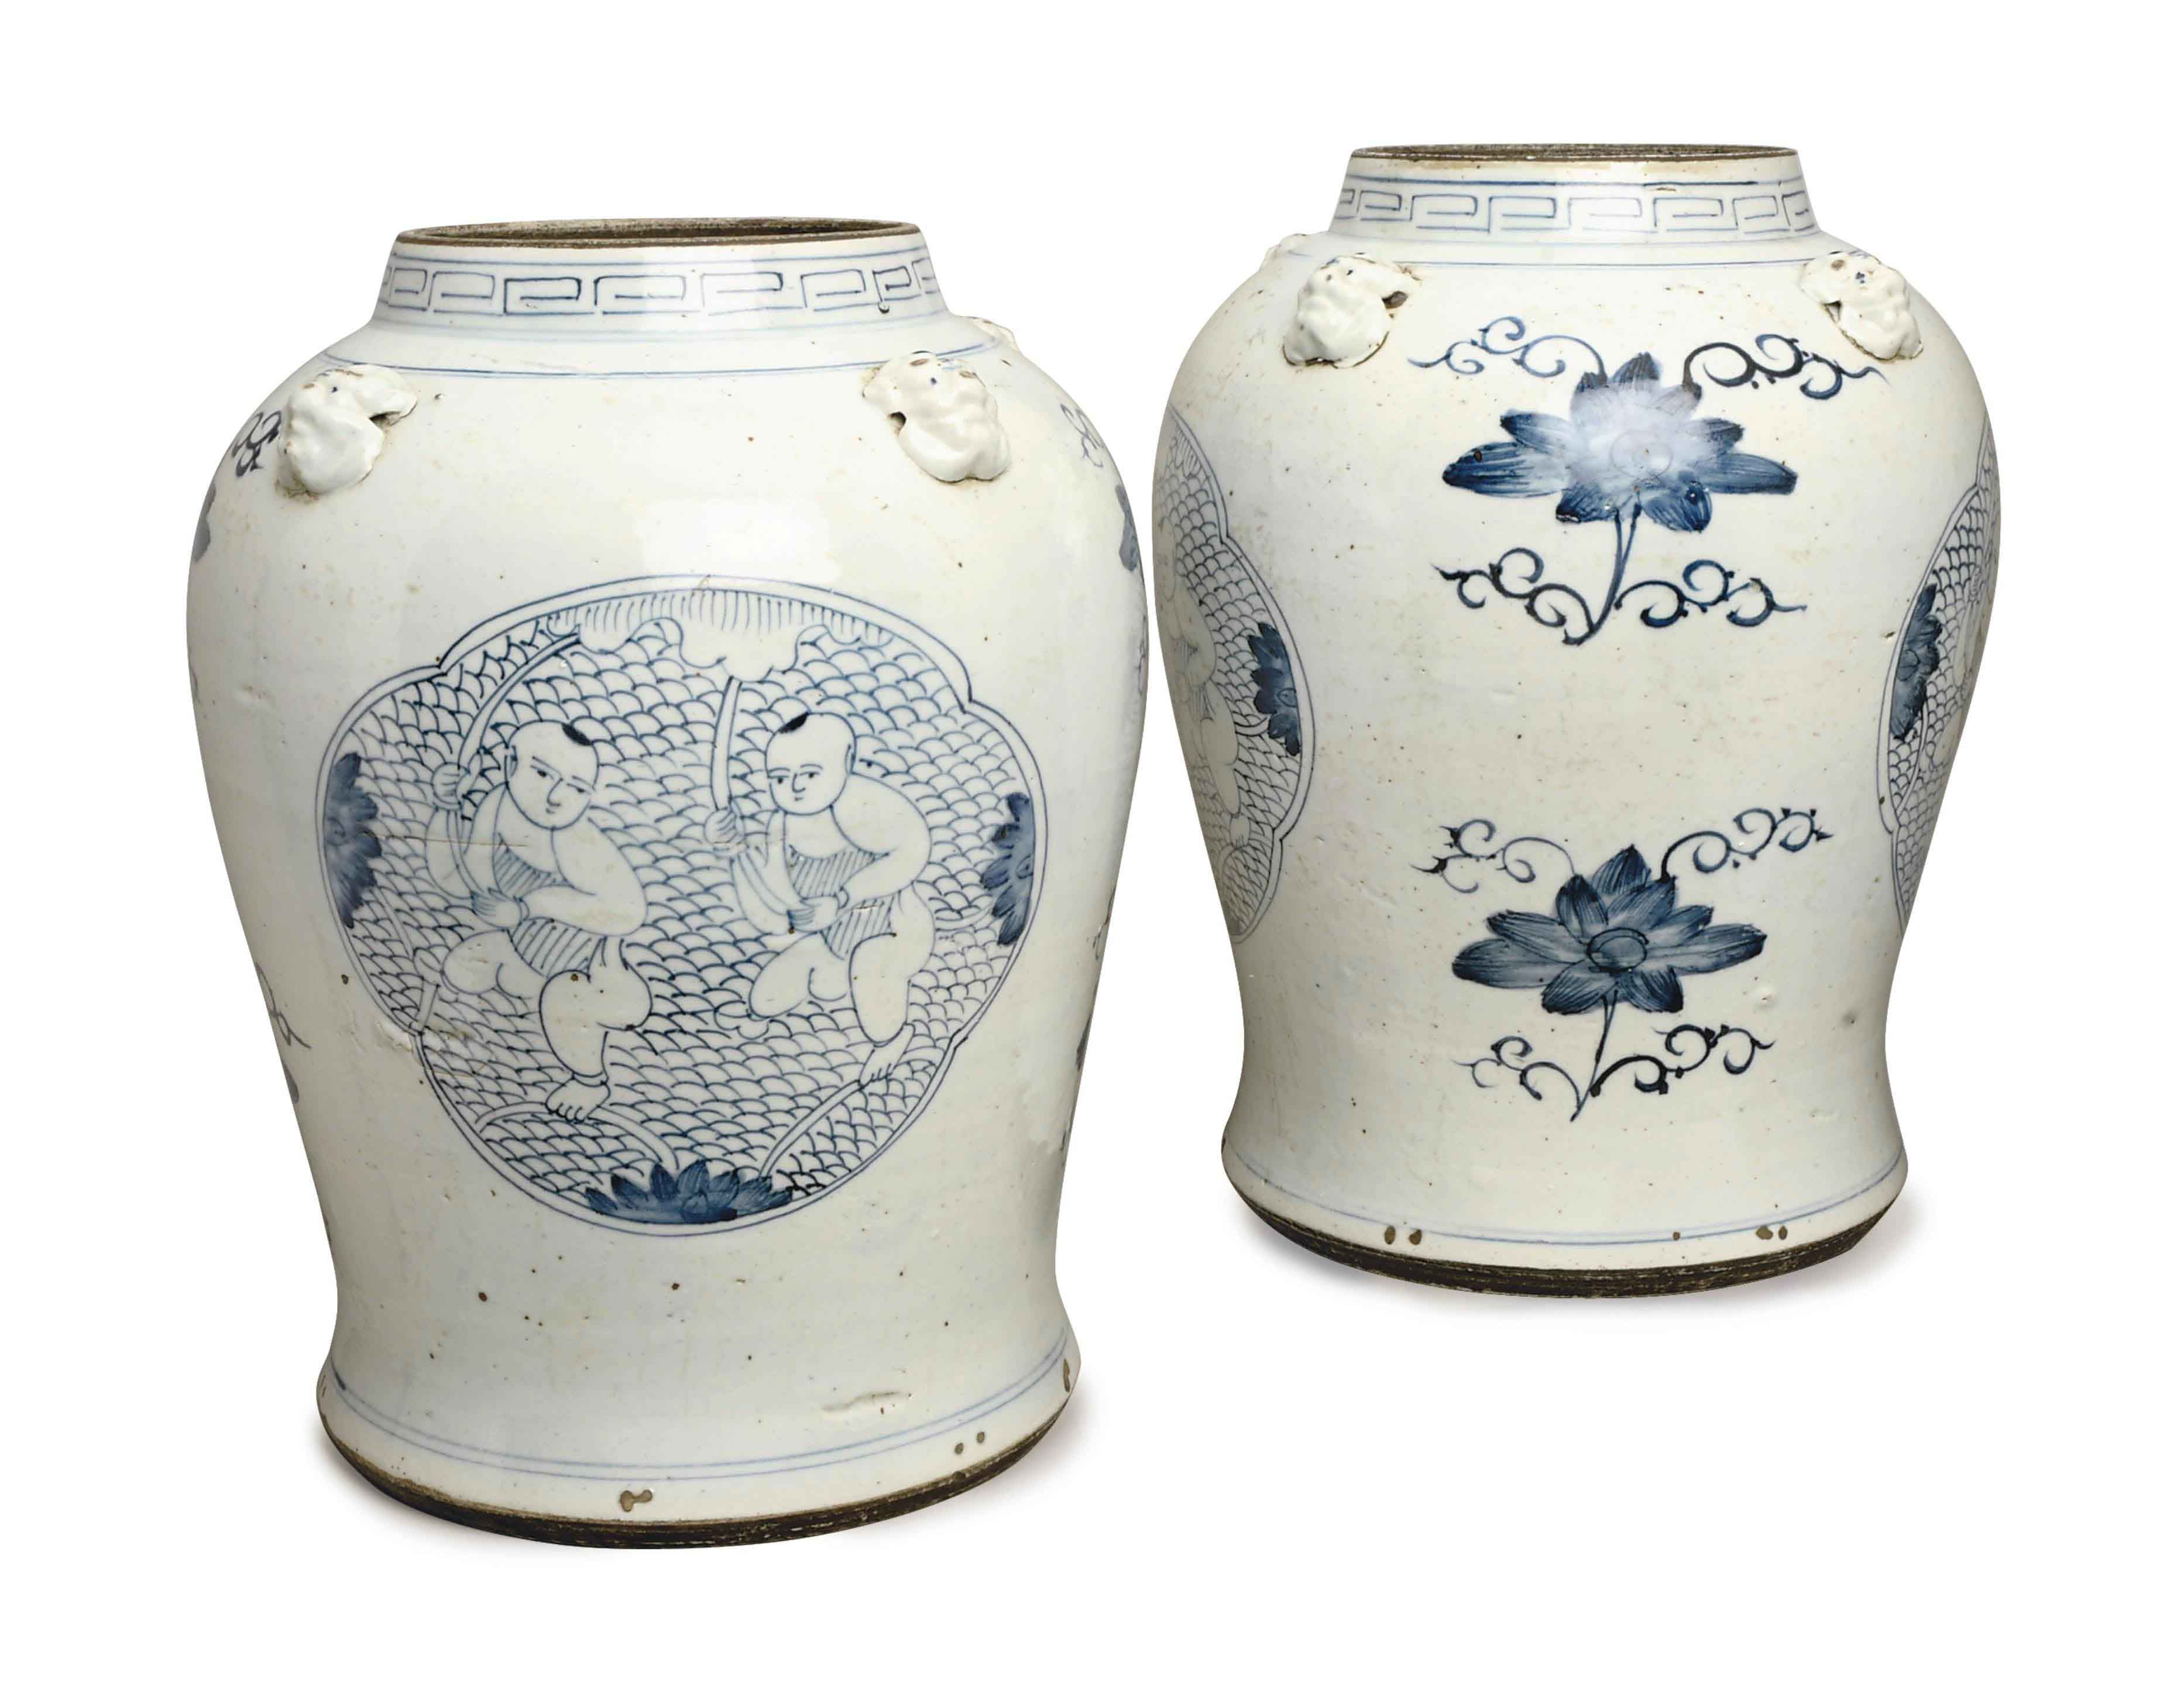 A PAIR OF LARGE CHINESE PORCELAIN JARS WITH LION MASK HANDLES,